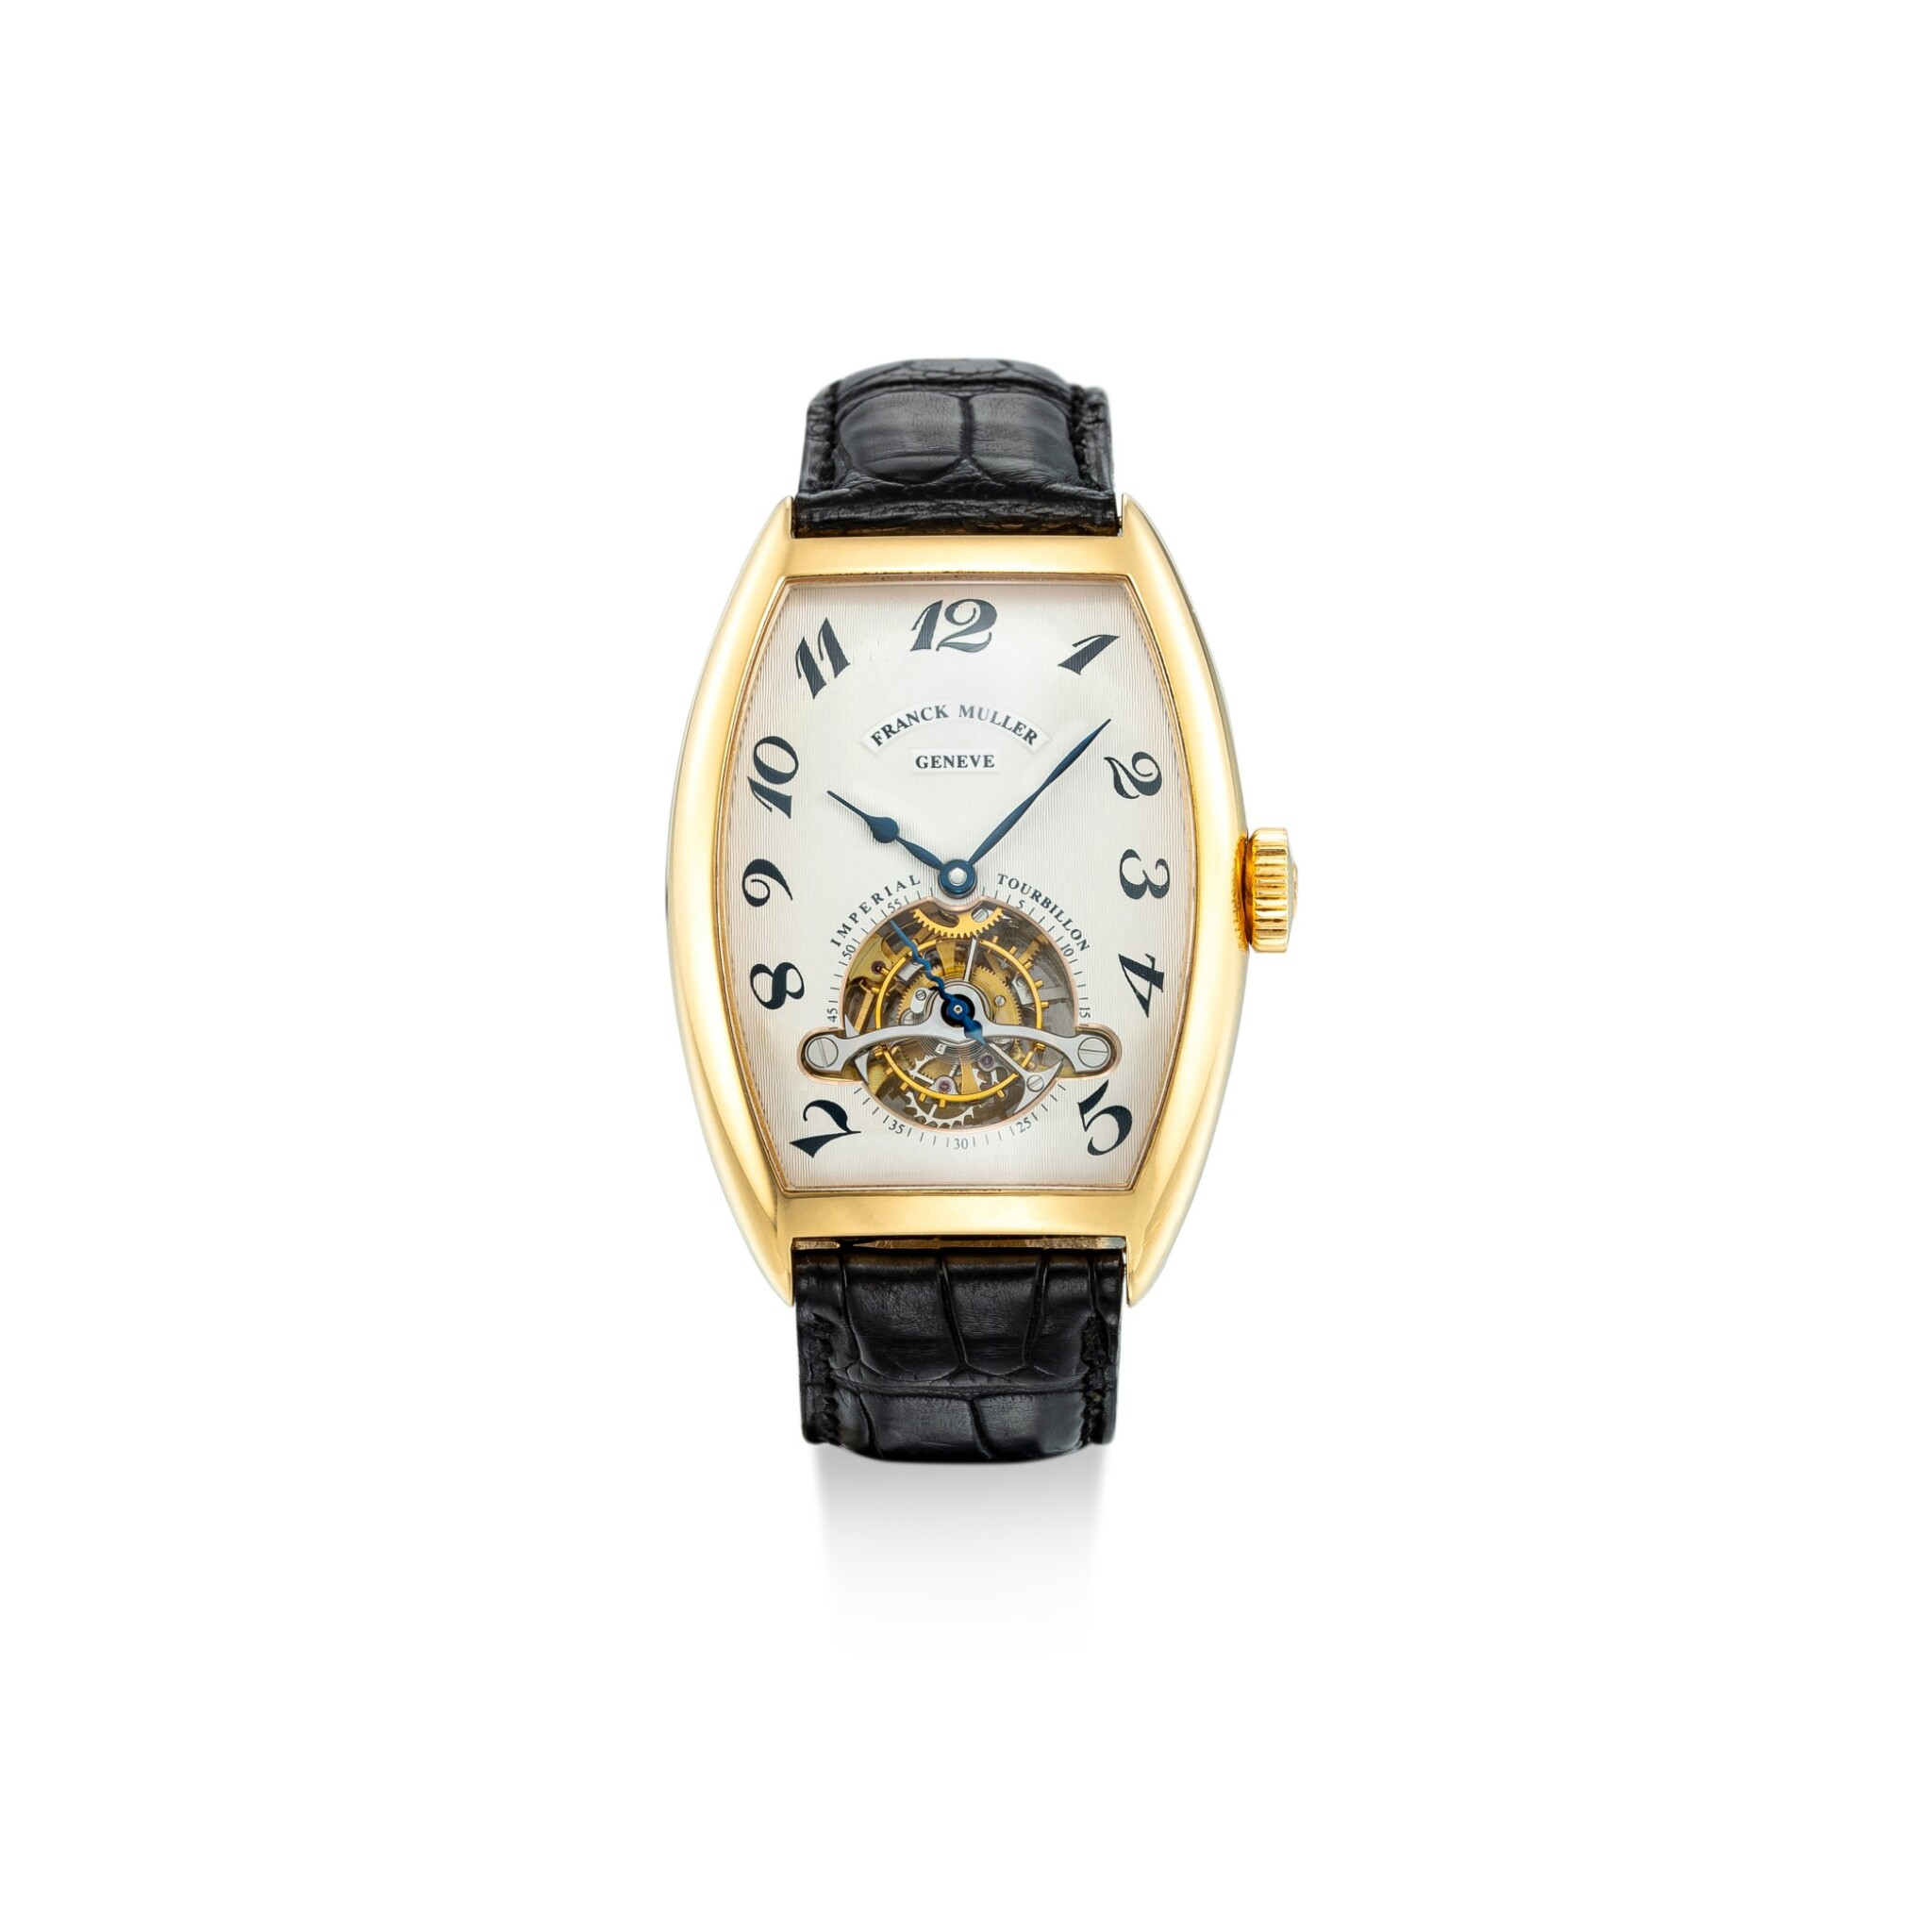 View 1 of Lot 1104. FRANCK MULLER | IMPERIAL TOURBILLON, REFERENCE 5850 T, A YELLOW GOLD TOURBILLON WRISTWATCH, CIRCA 2005.